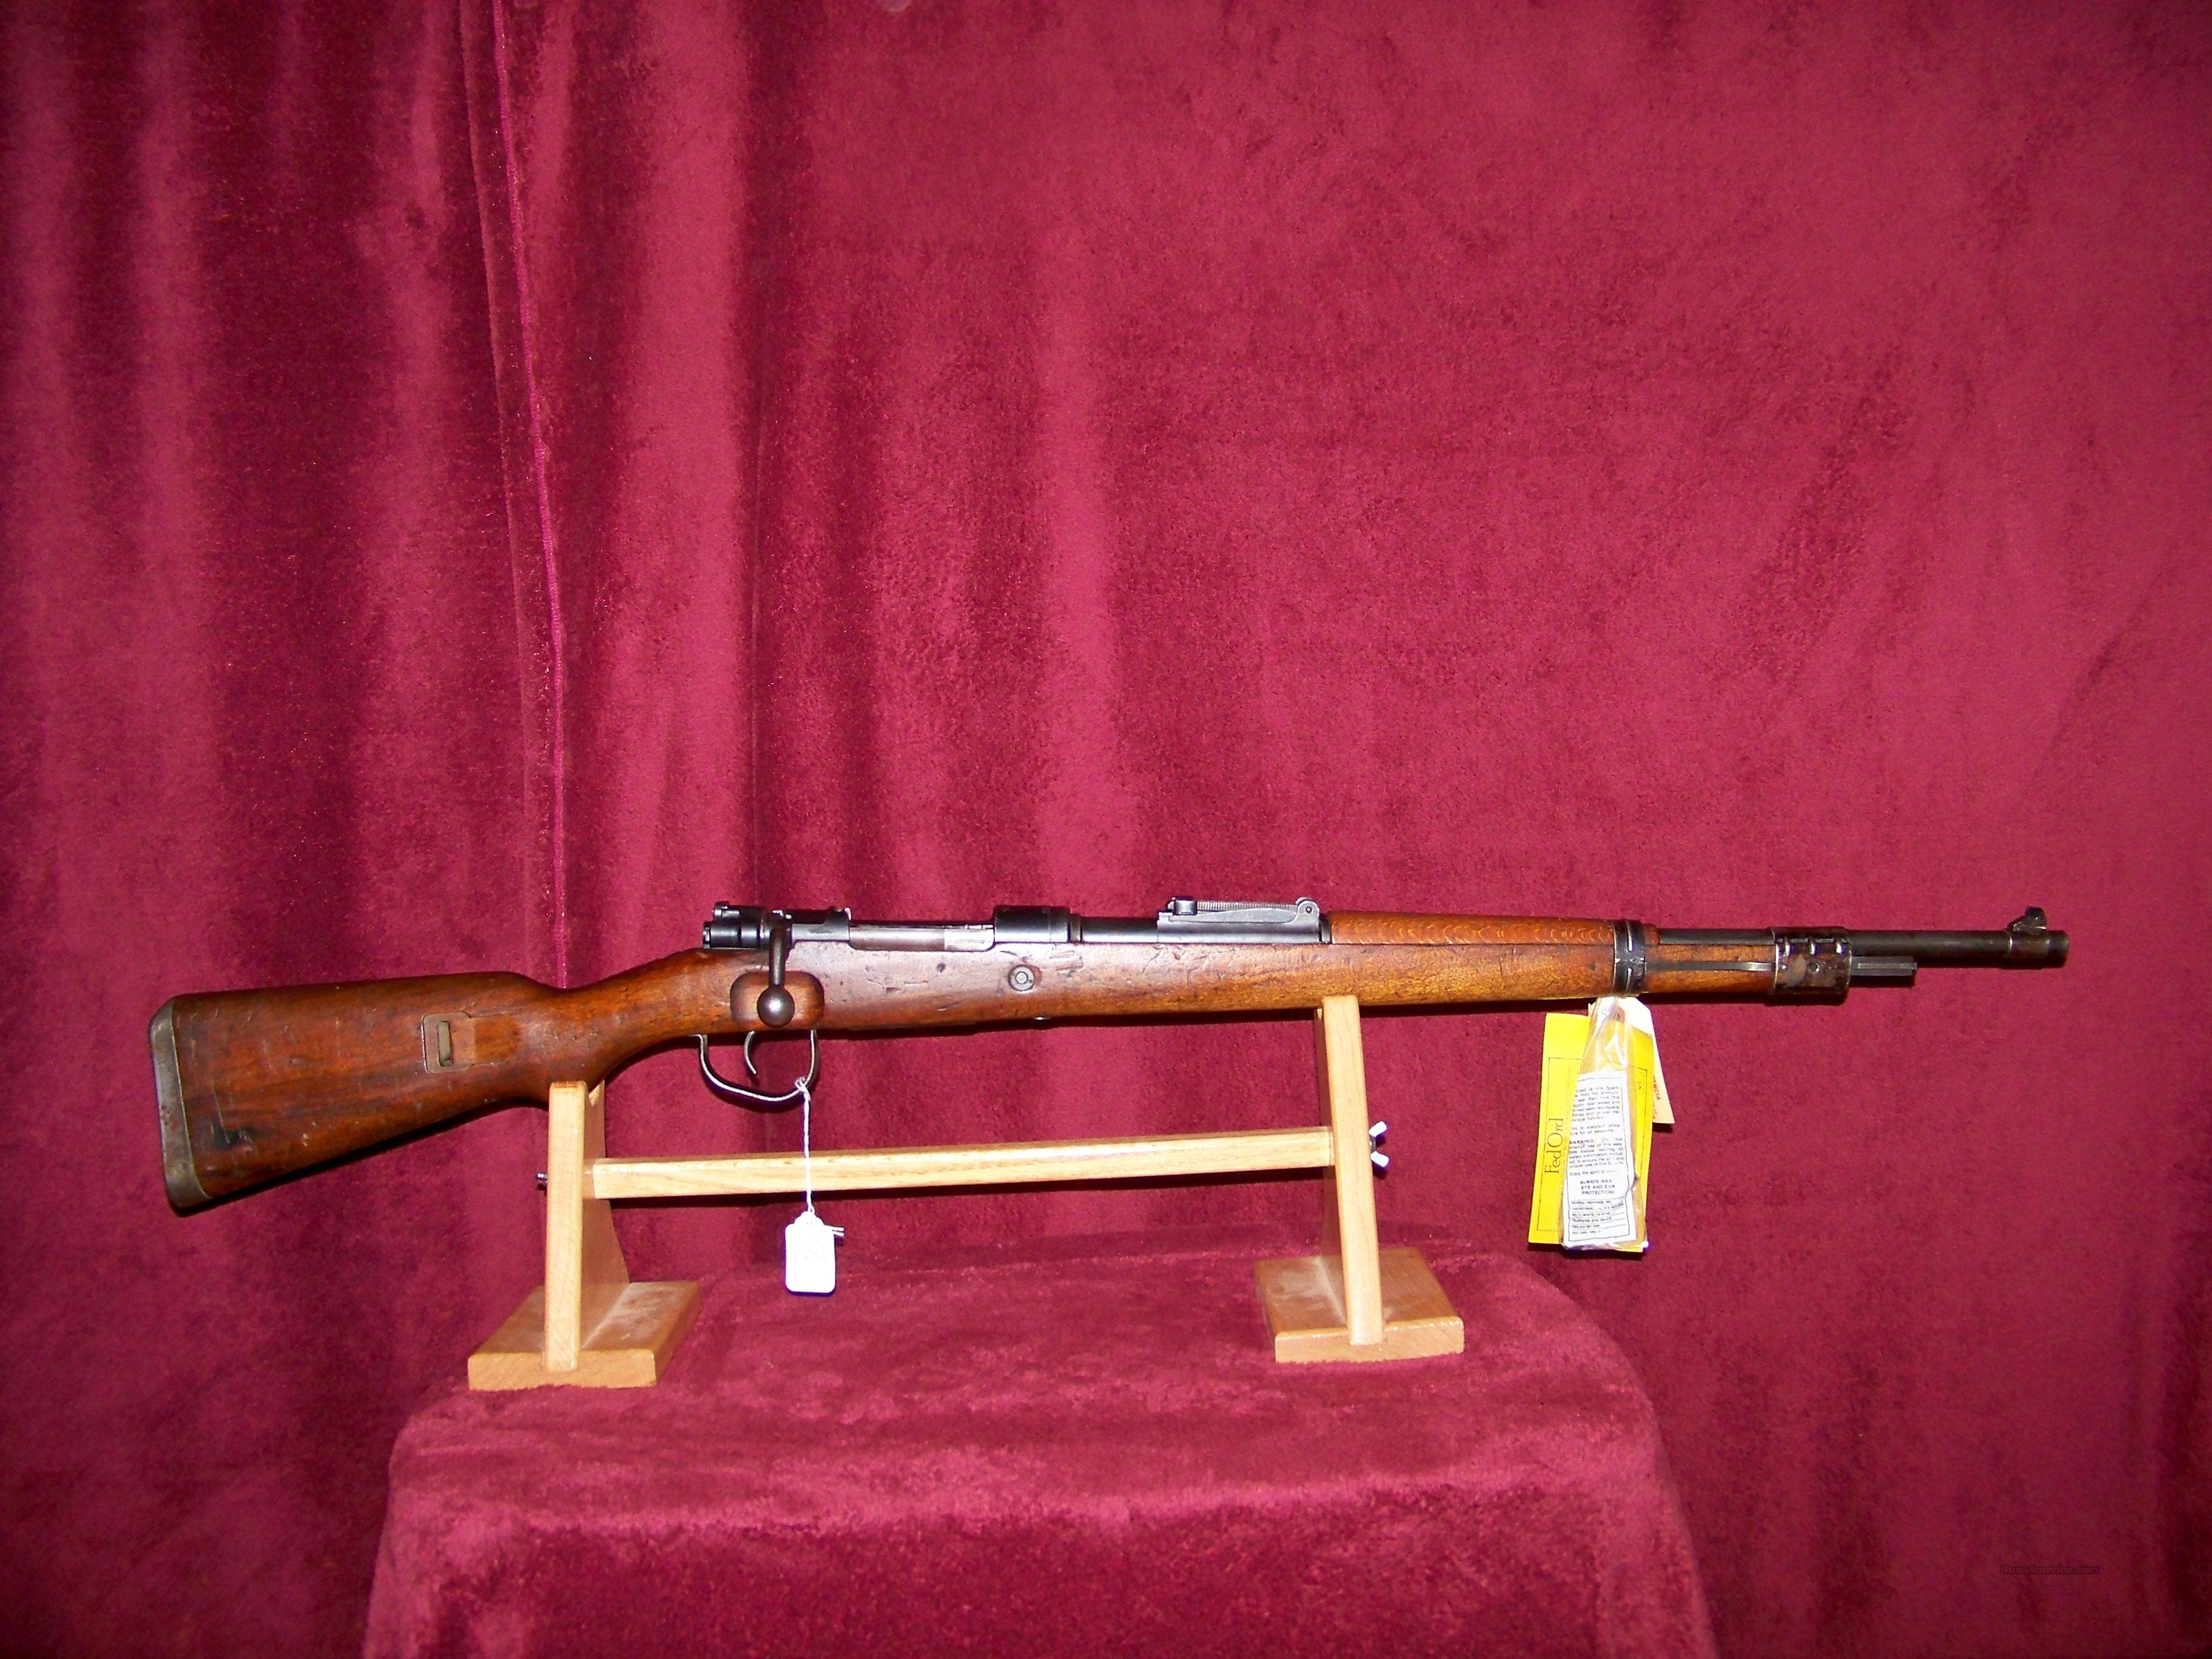 98K LATE WAR DOU 45 (BRUNO)  Guns > Rifles > Military Misc. Rifles Non-US > Other